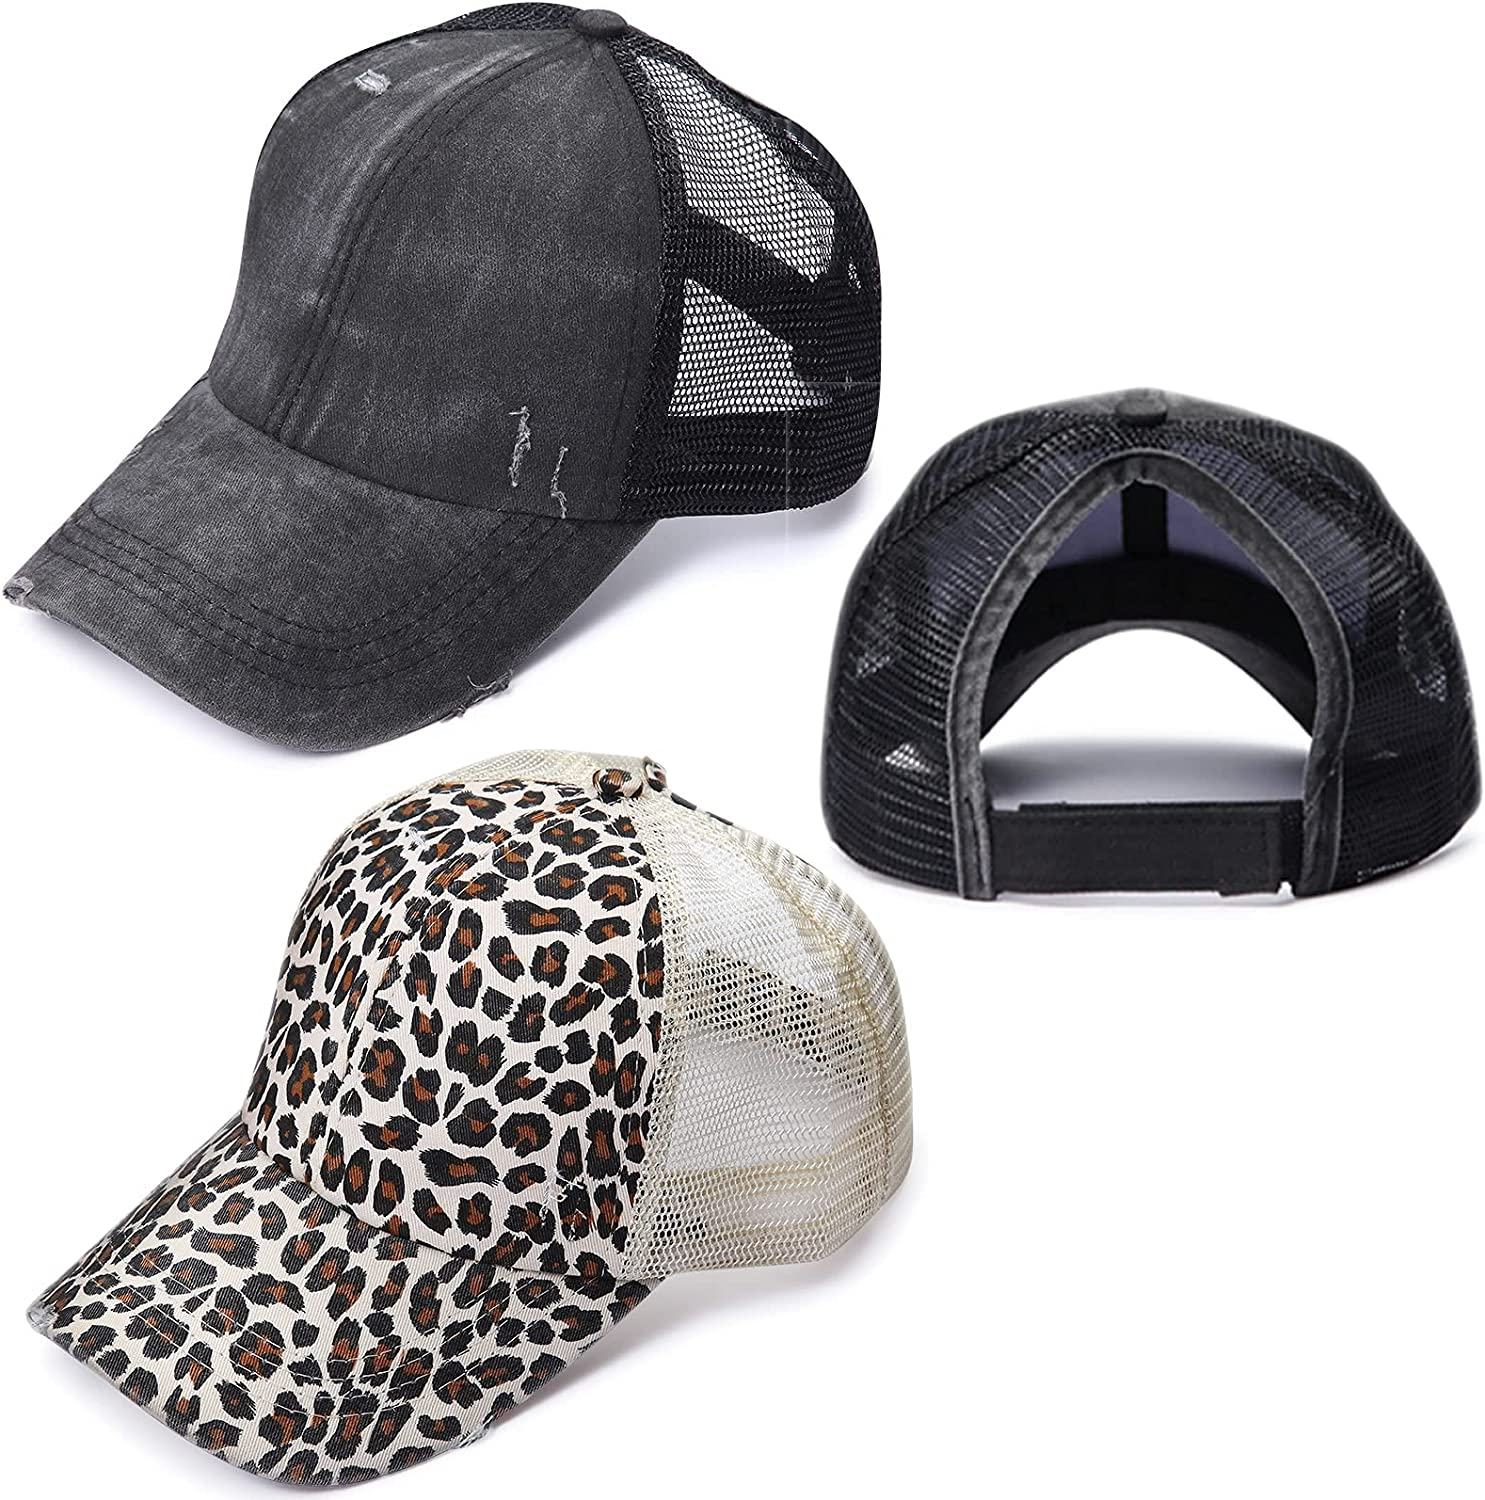 2 Pack Ponytail Baseball Hats Special price for Women Cross Bun Messy Ha Criss Outlet SALE